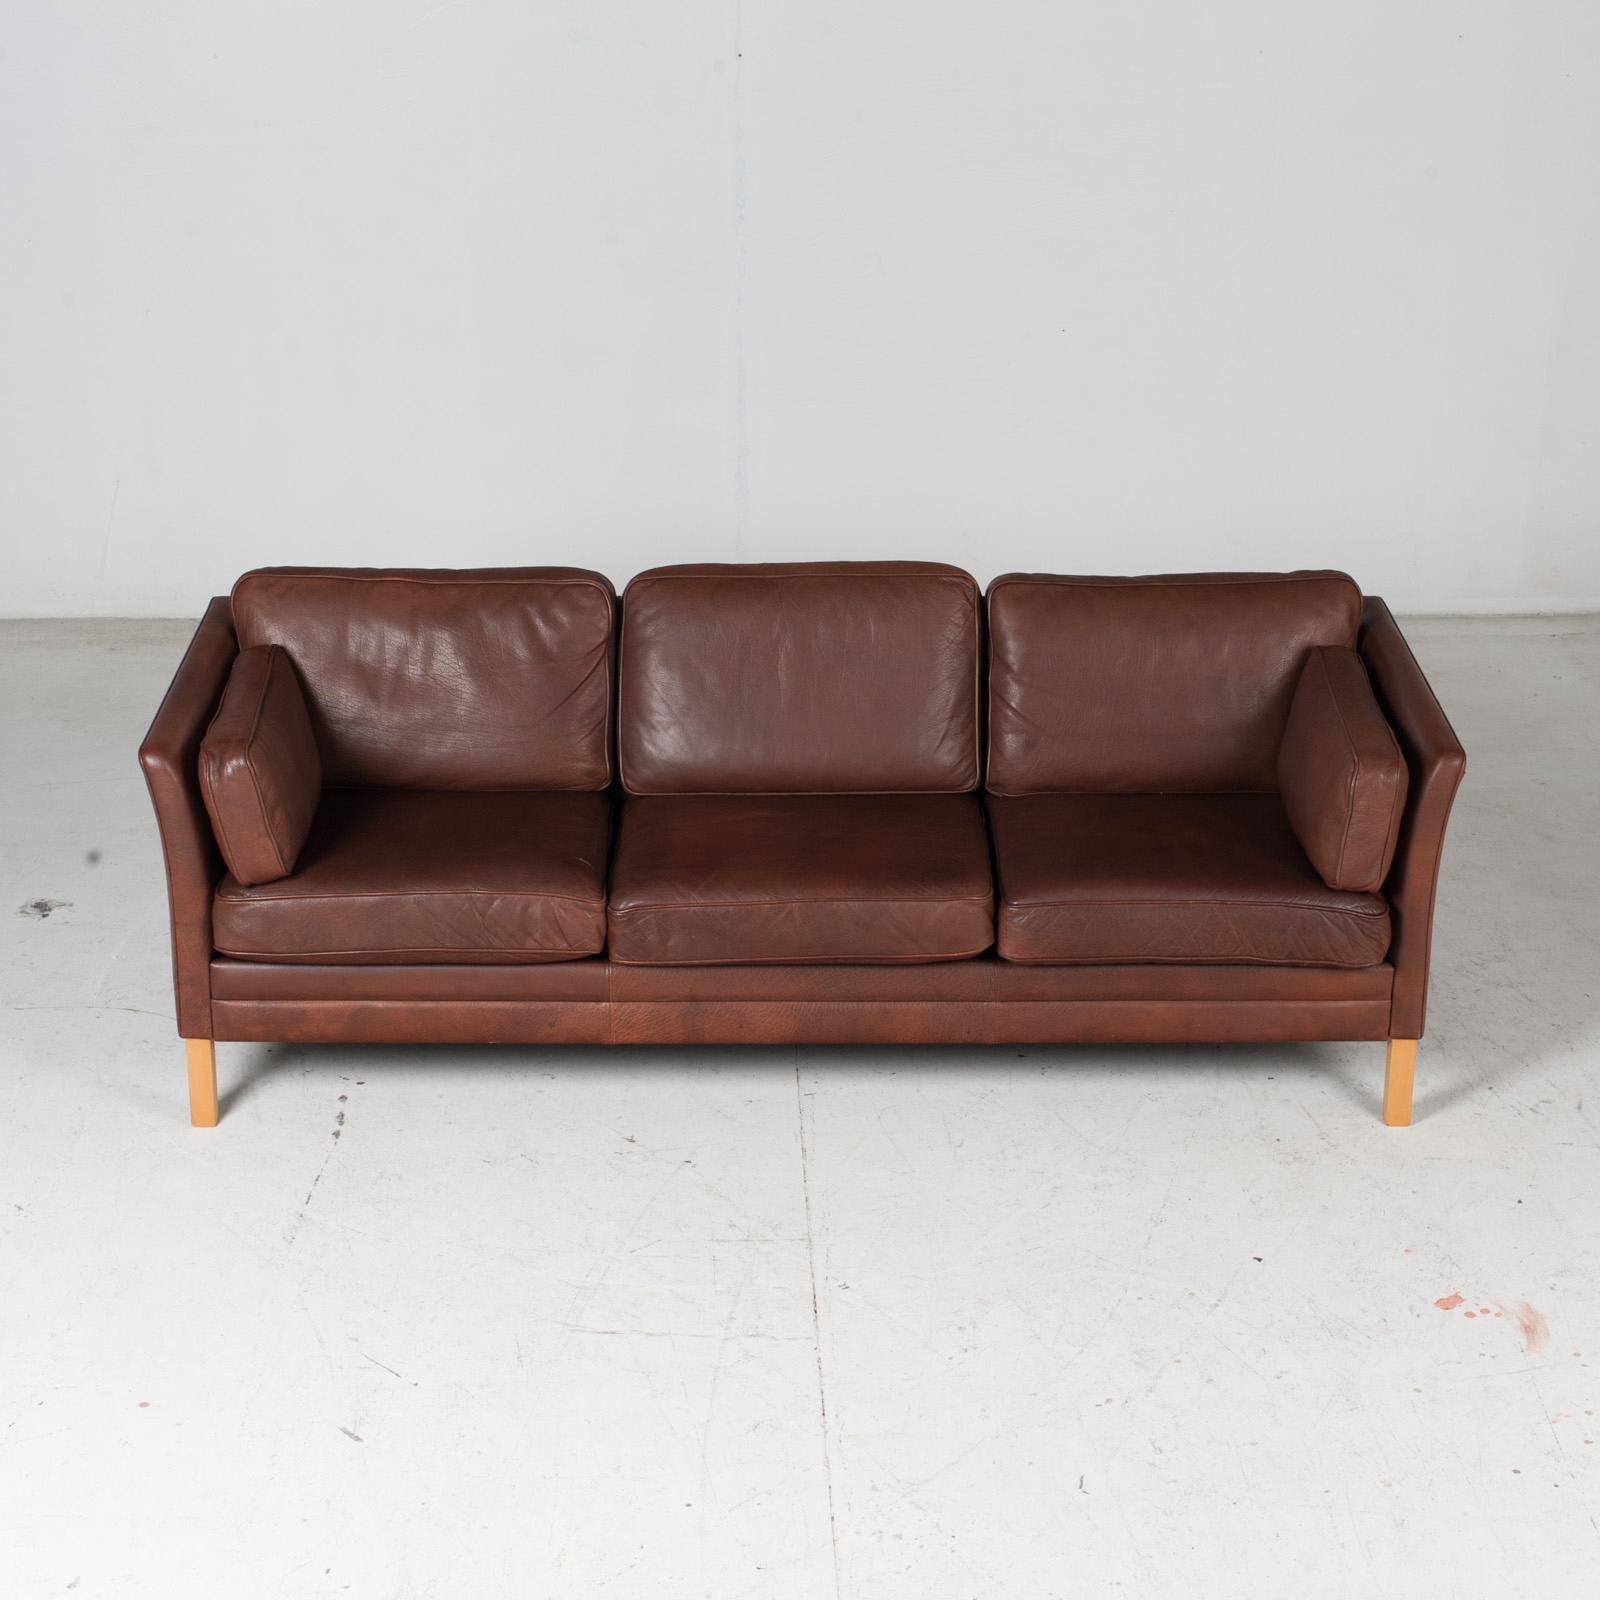 3 Seat Sofa In Brown Leather With Beech Legs, 1960s, Denmark 1